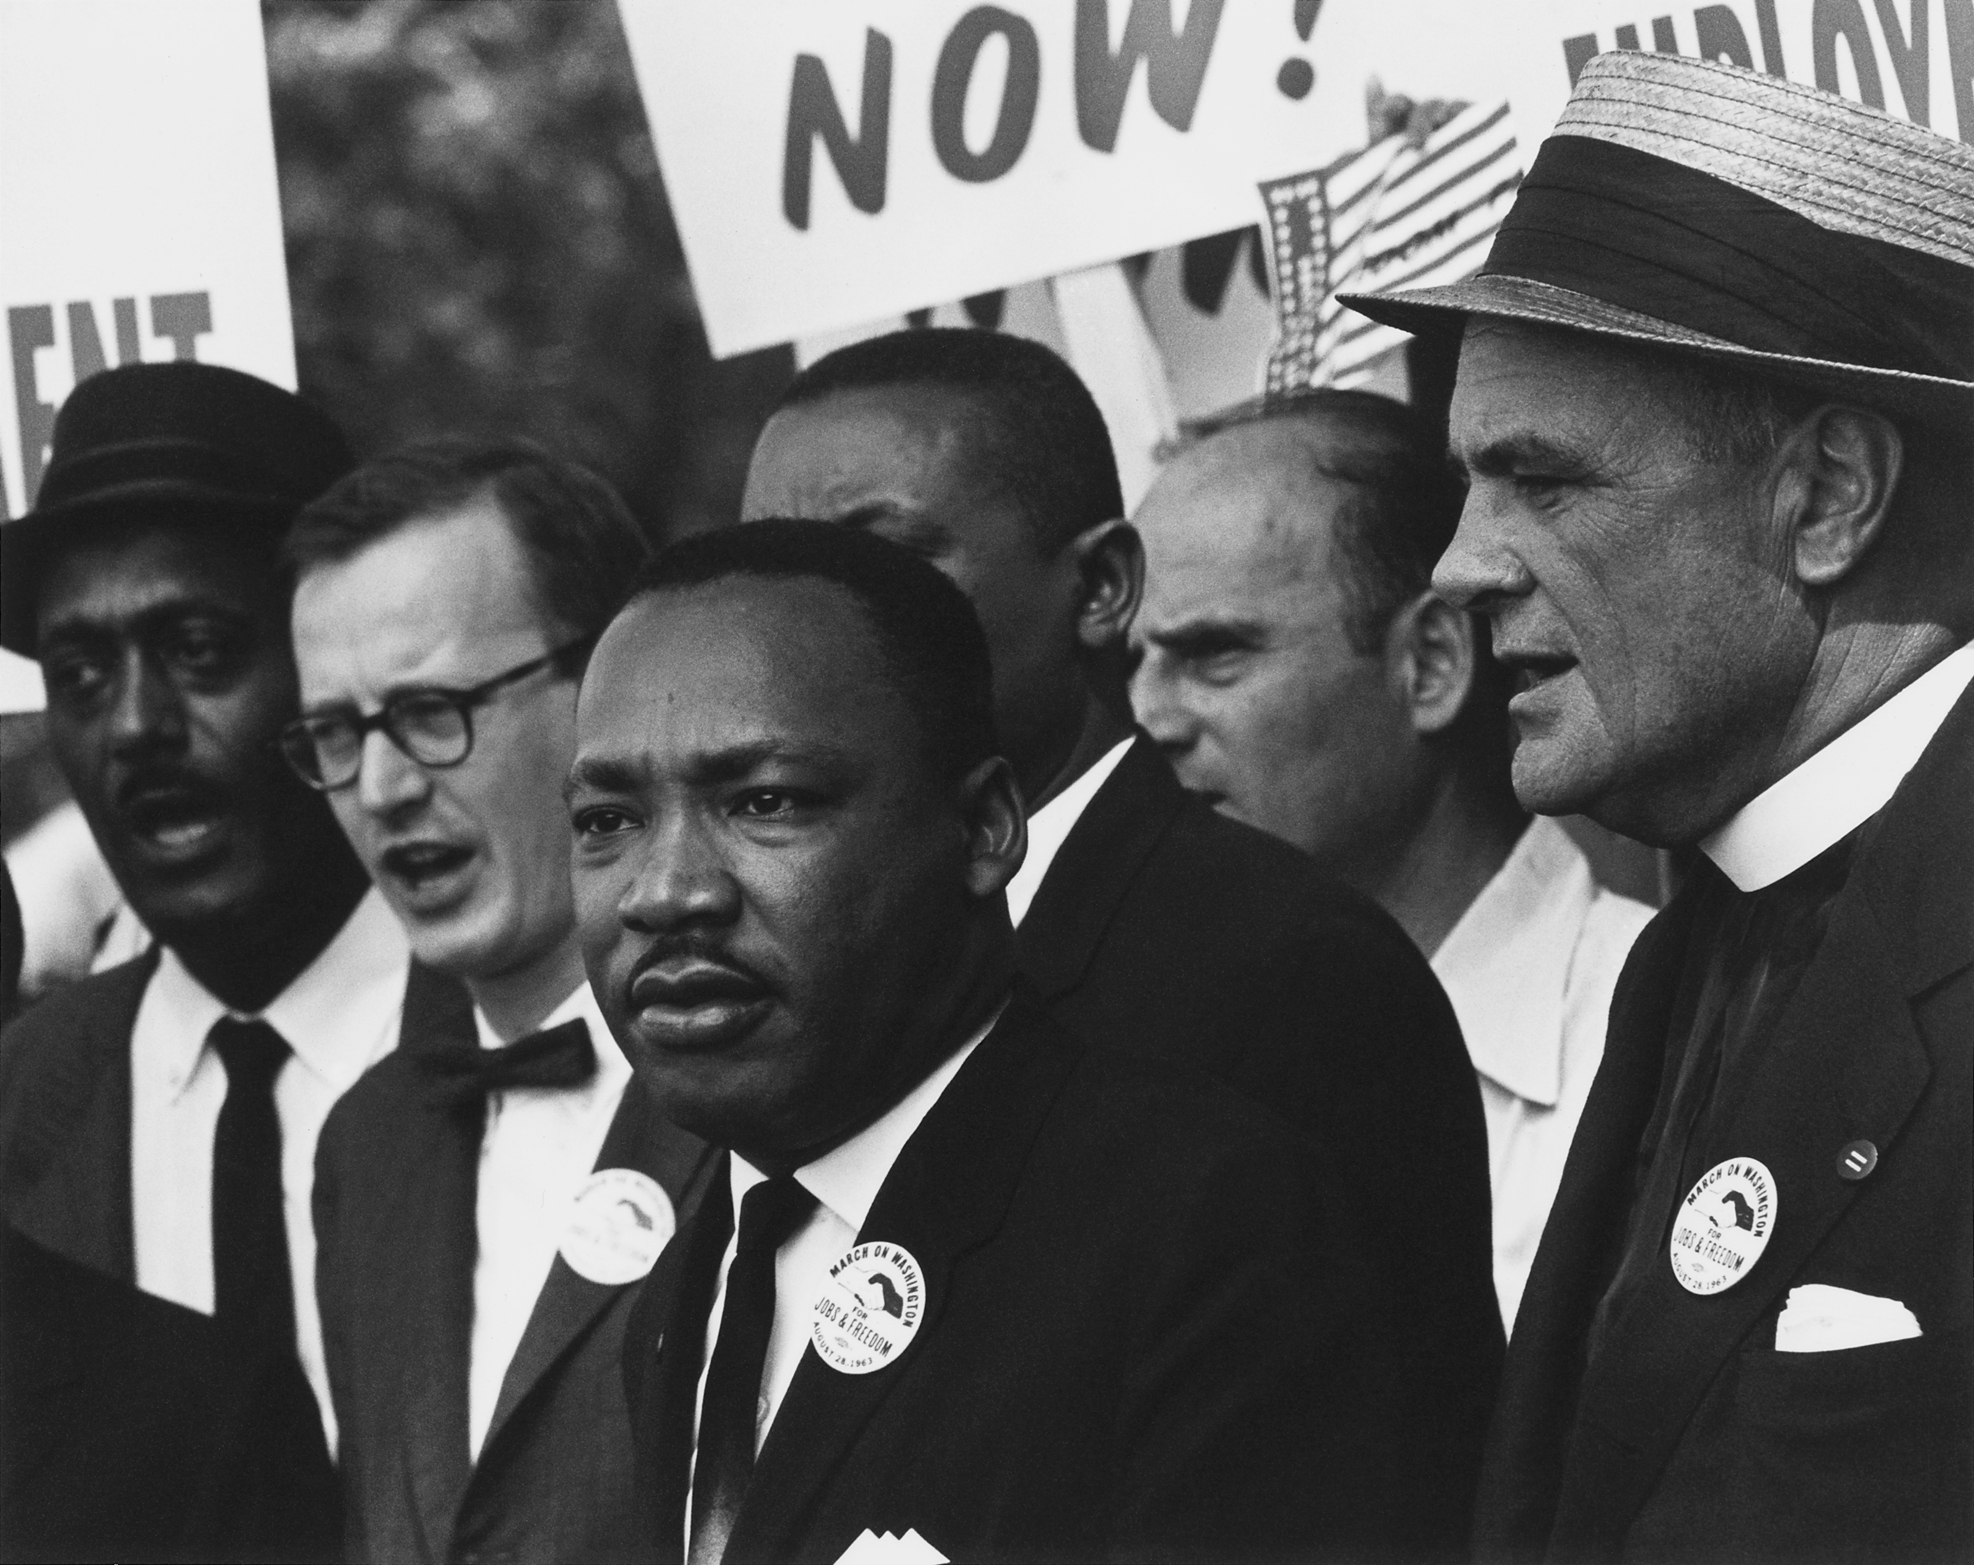 Civil_Rights_March_on_Washington__D.C._(Dr._Martin_Luther_King__Jr._and_Mathew_Ahmann_in_a_crowd.)_-_NARA_-_542015_-_Restoration.jpg